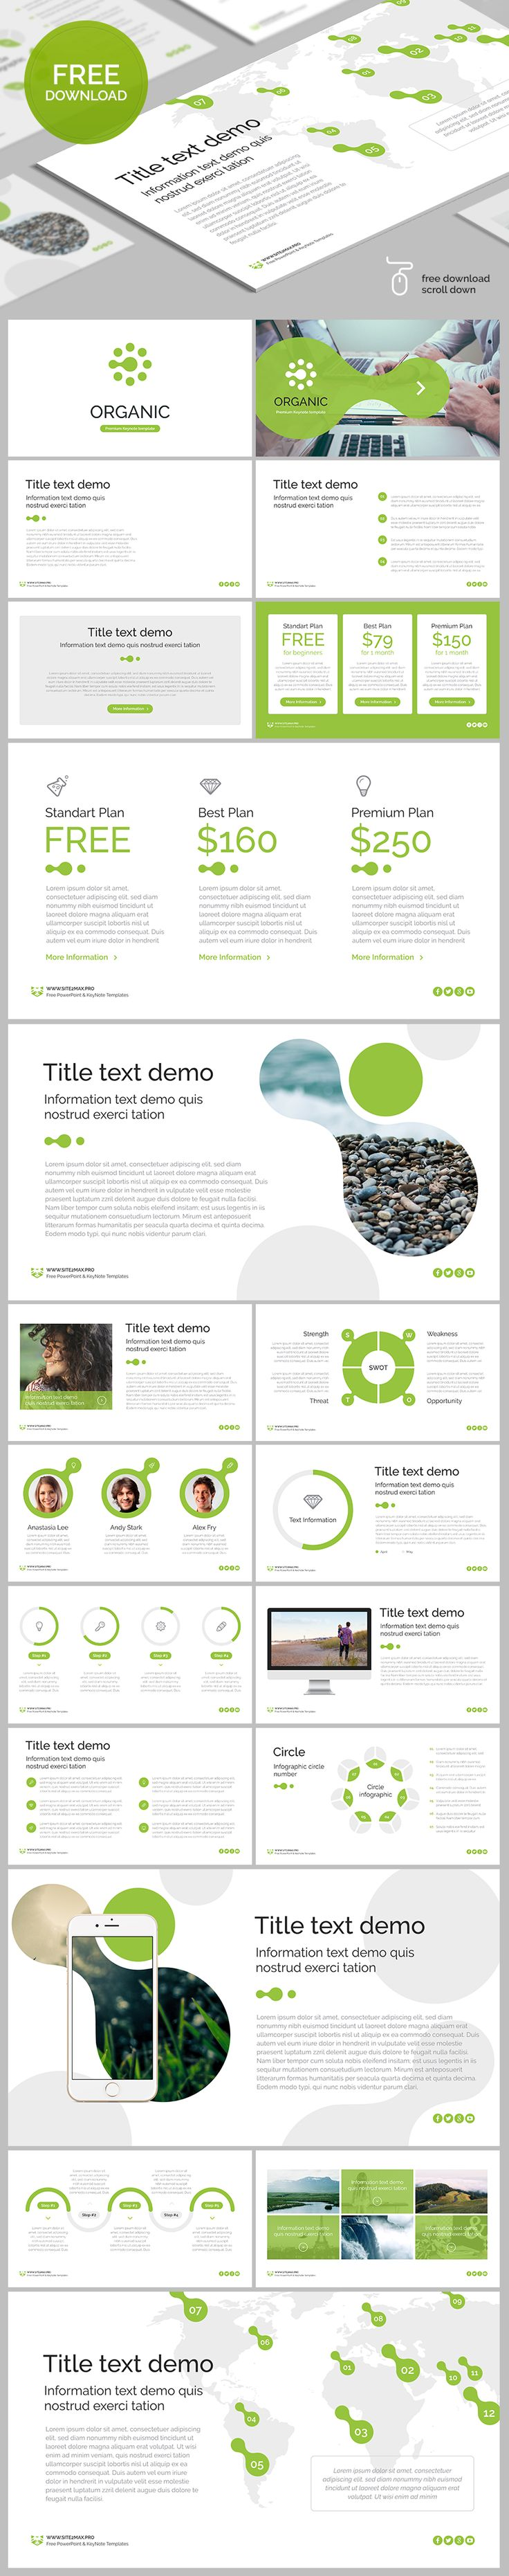 "DOWNLOAD LINK: Free Keynote template ""Organic"", 20 unique slides, 16:9 HD, .key…"